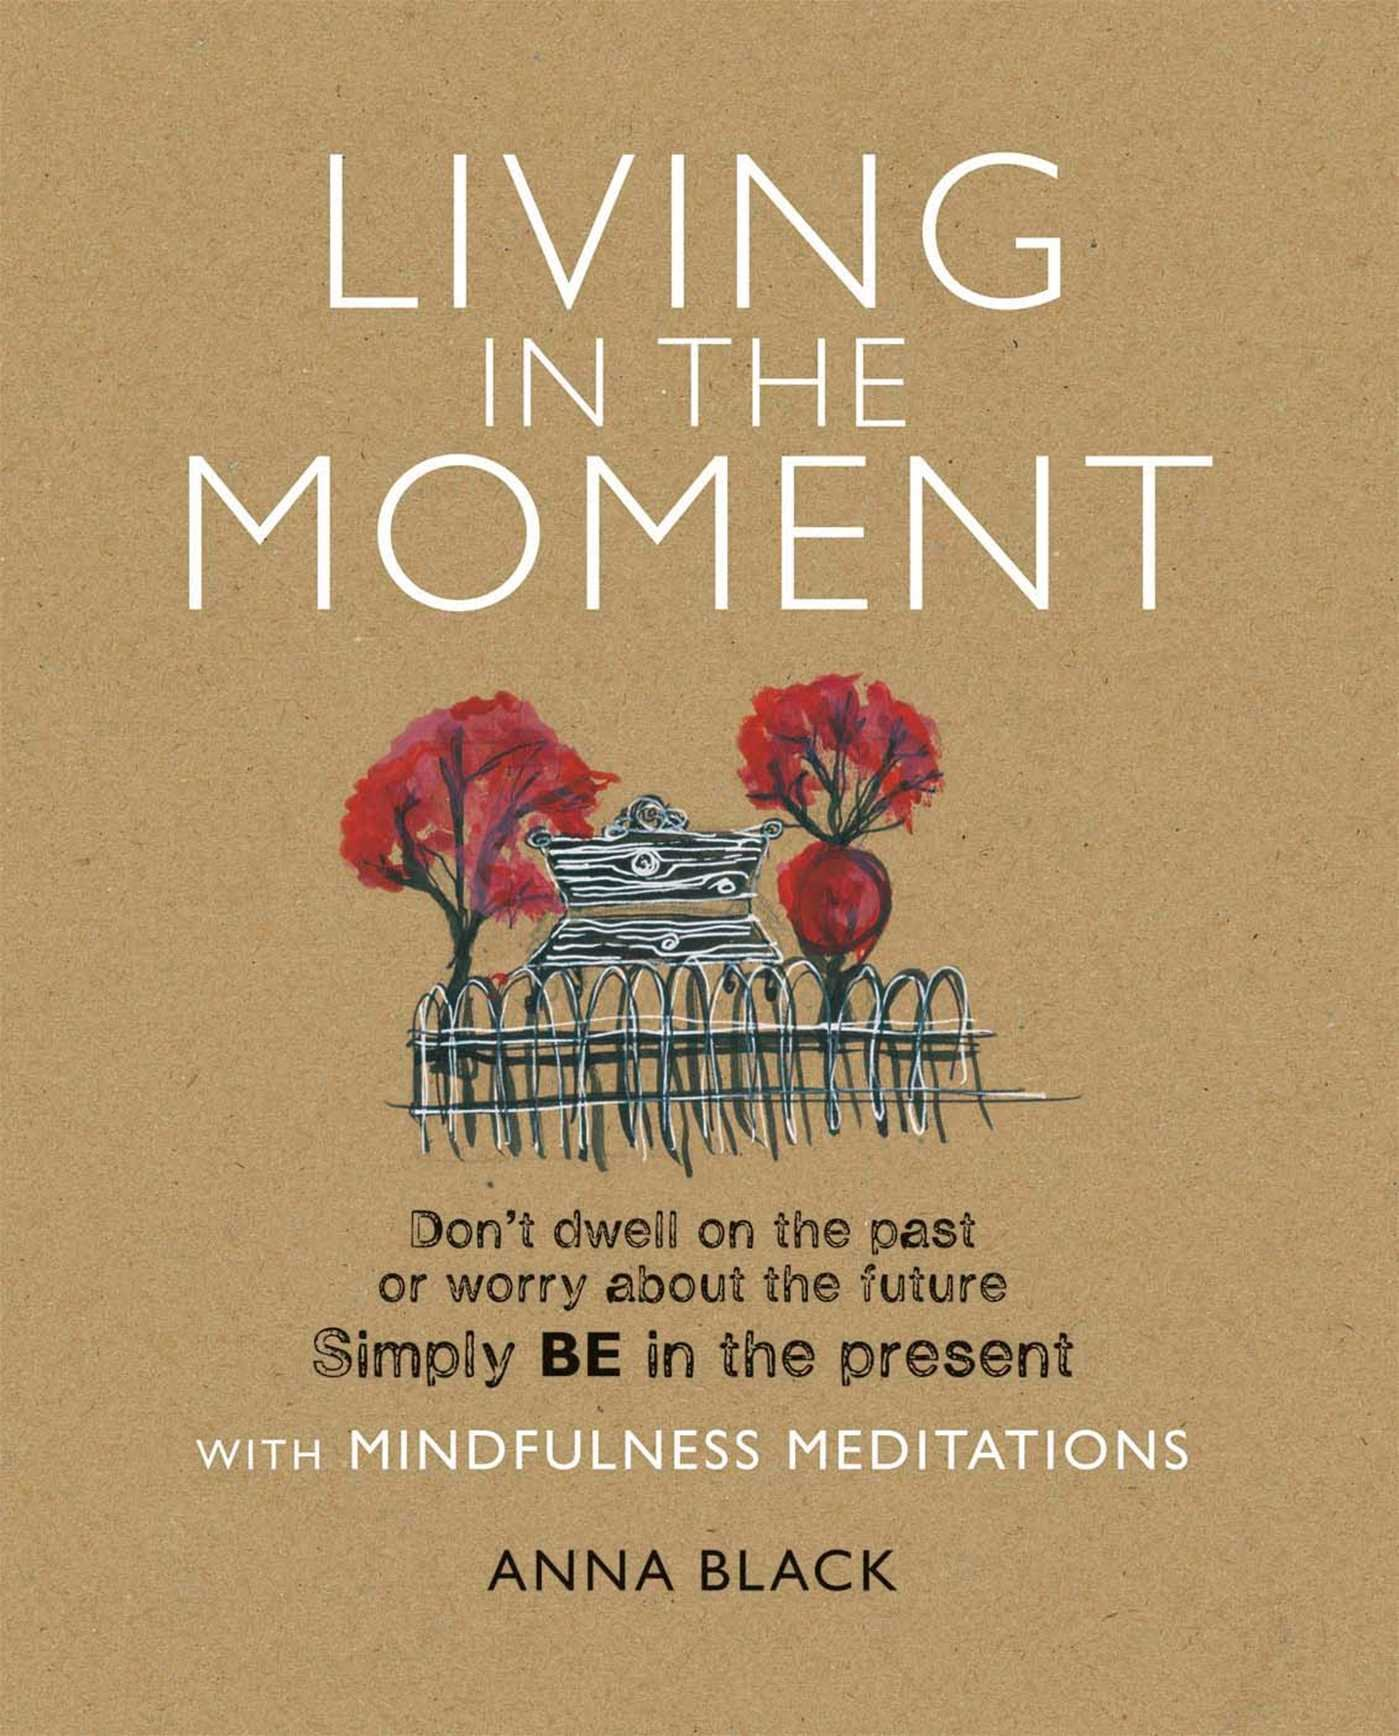 Living In The Moment: Donu0027t Dwell On The Past Or Worry About The Future.  Simply BE In The Present With Mindfulness Meditations: Anna Black:  9781908170446: ...